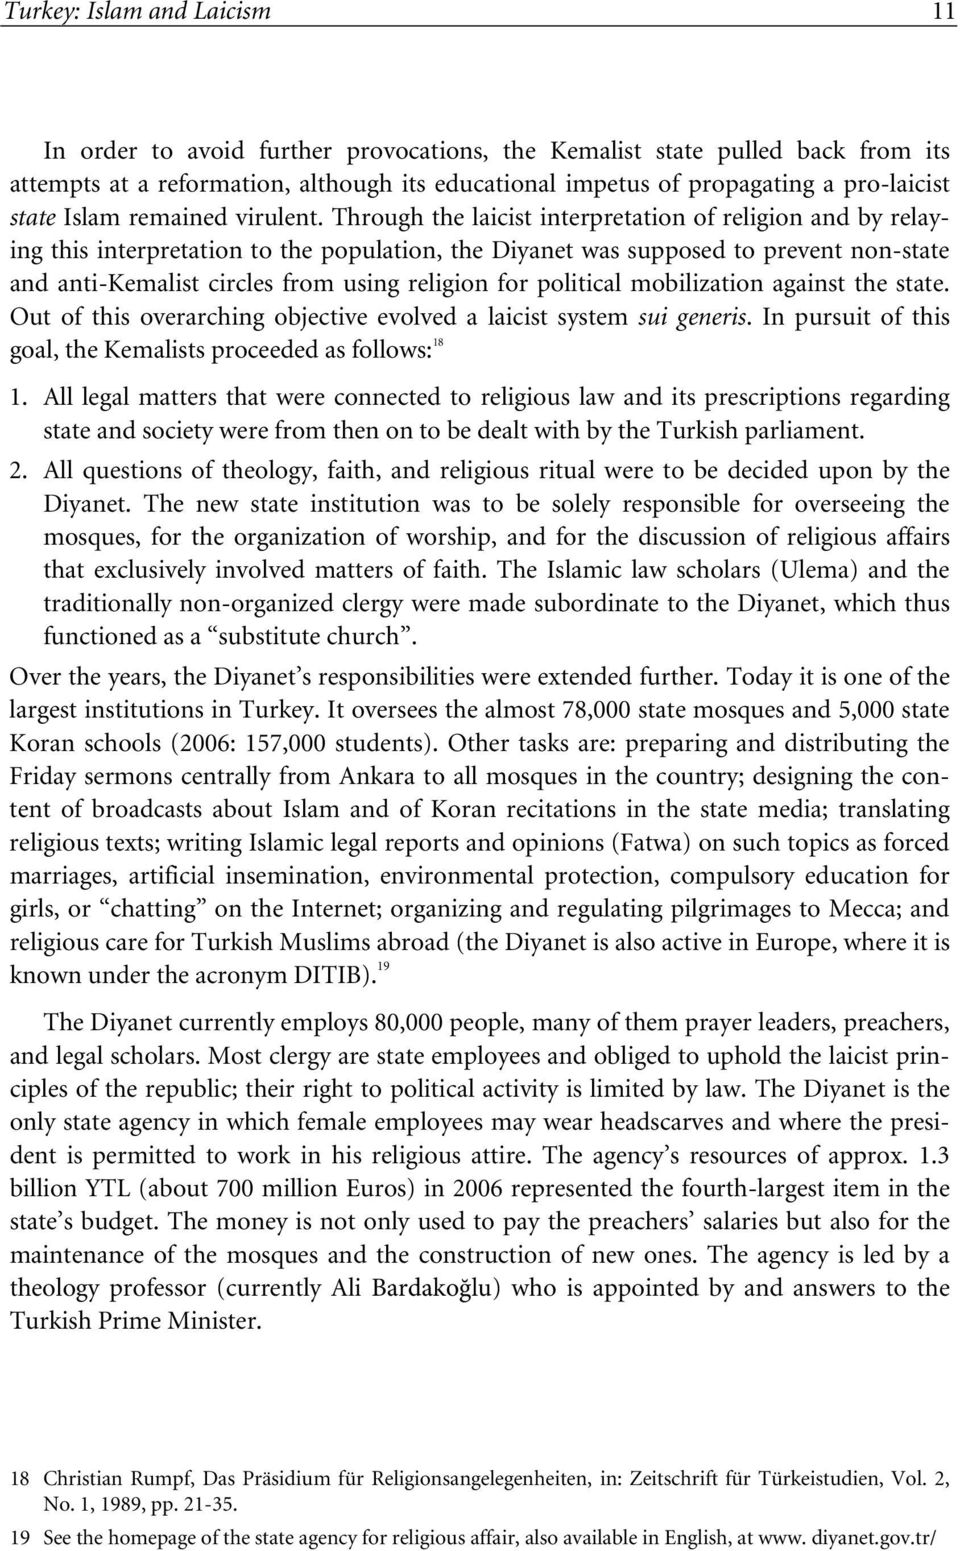 Through the laicist interpretation of religion and by relaying this interpretation to the population, the Diyanet was supposed to prevent non-state and anti-kemalist circles from using religion for